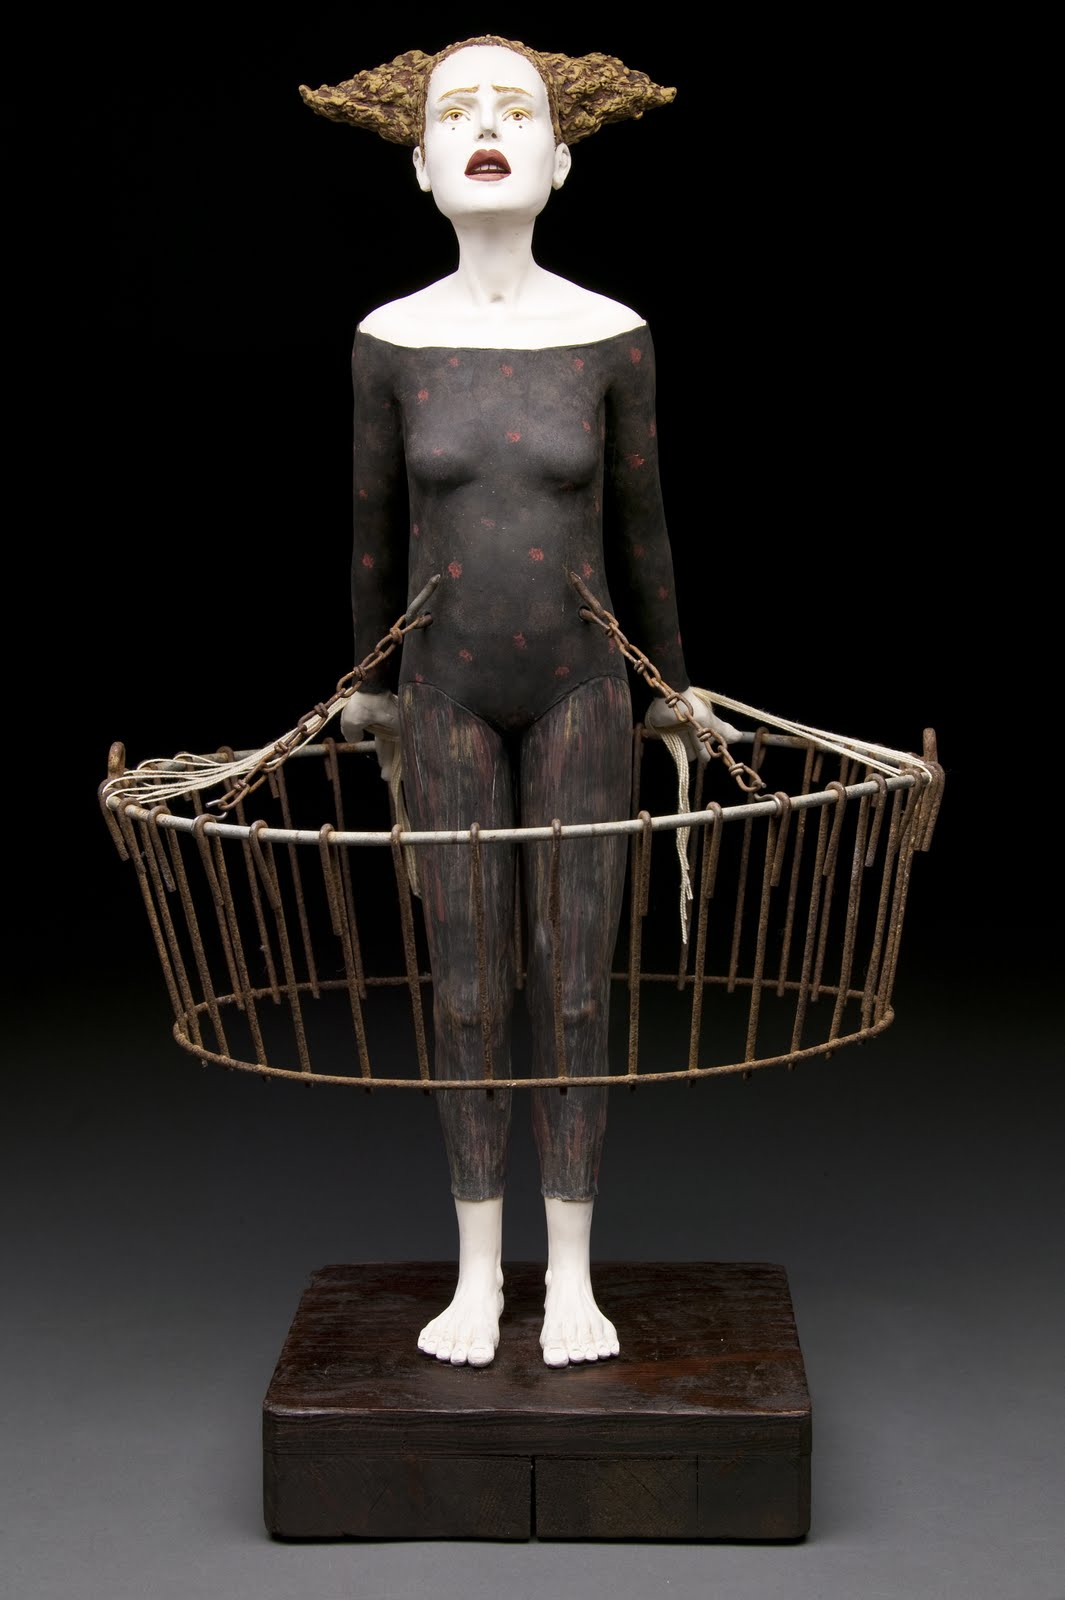 Kirsten Stingle – Sculptures – My Own Limitations